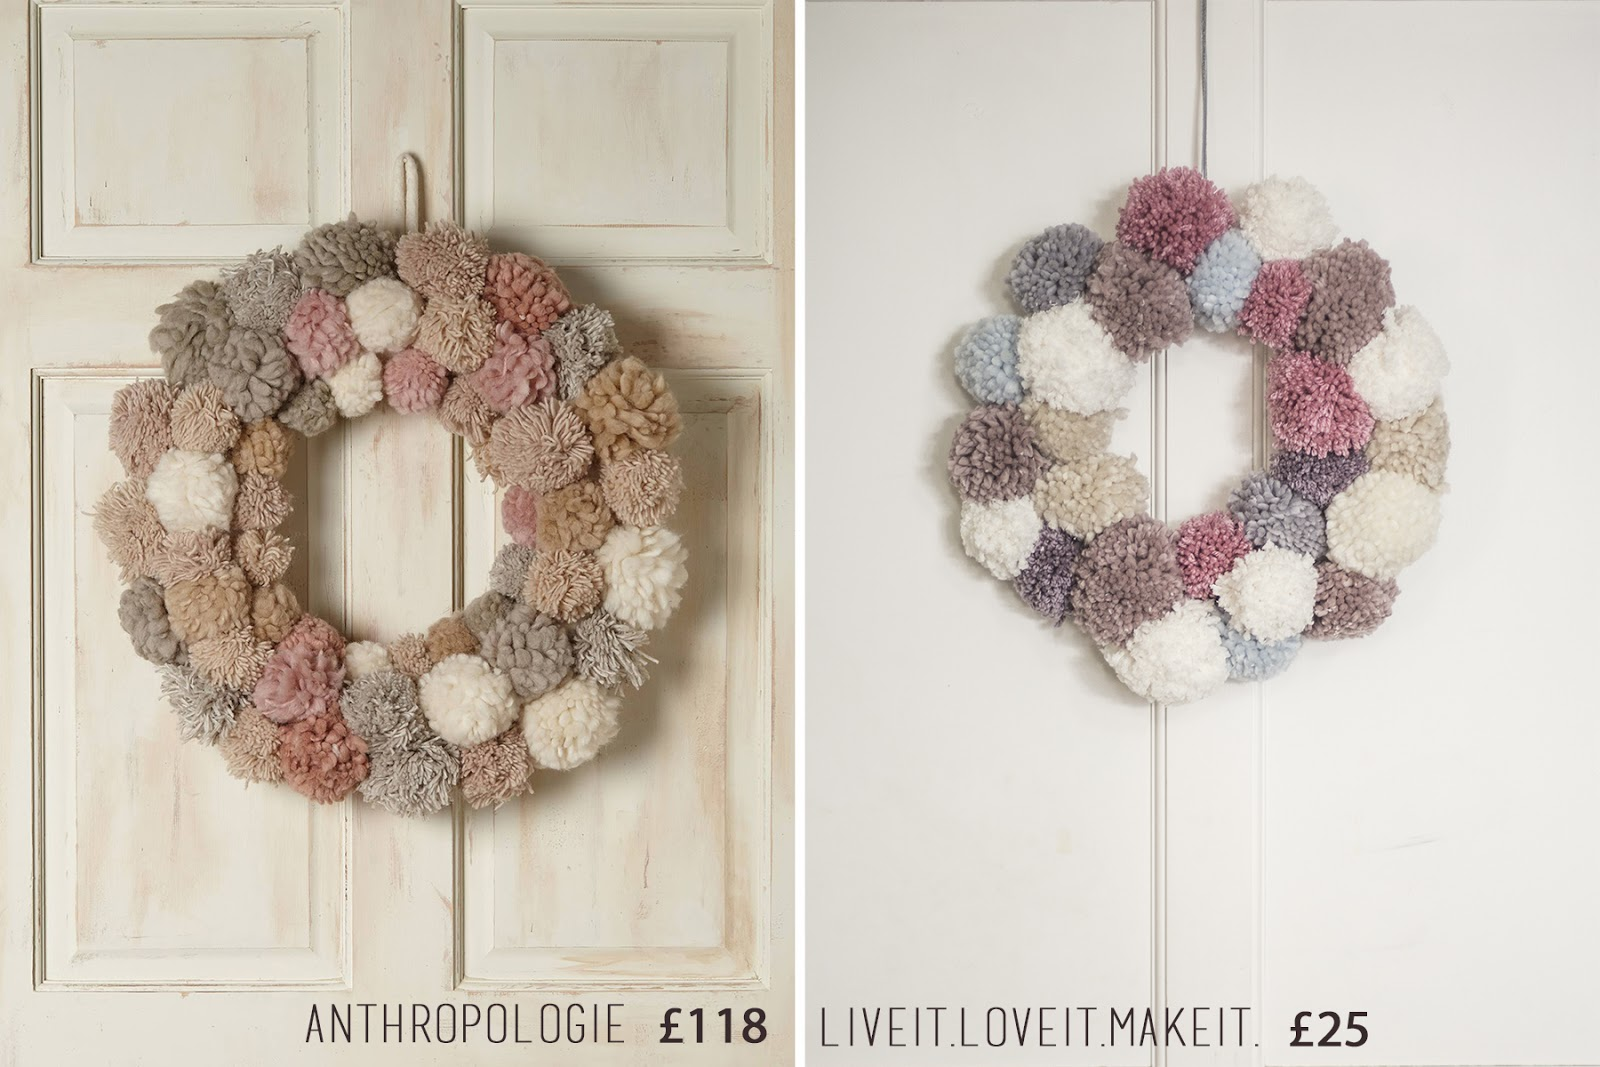 This Years Christmas Decoration Collection Was The Perfect Example And I Thought I Would Share What I Ended Up Making